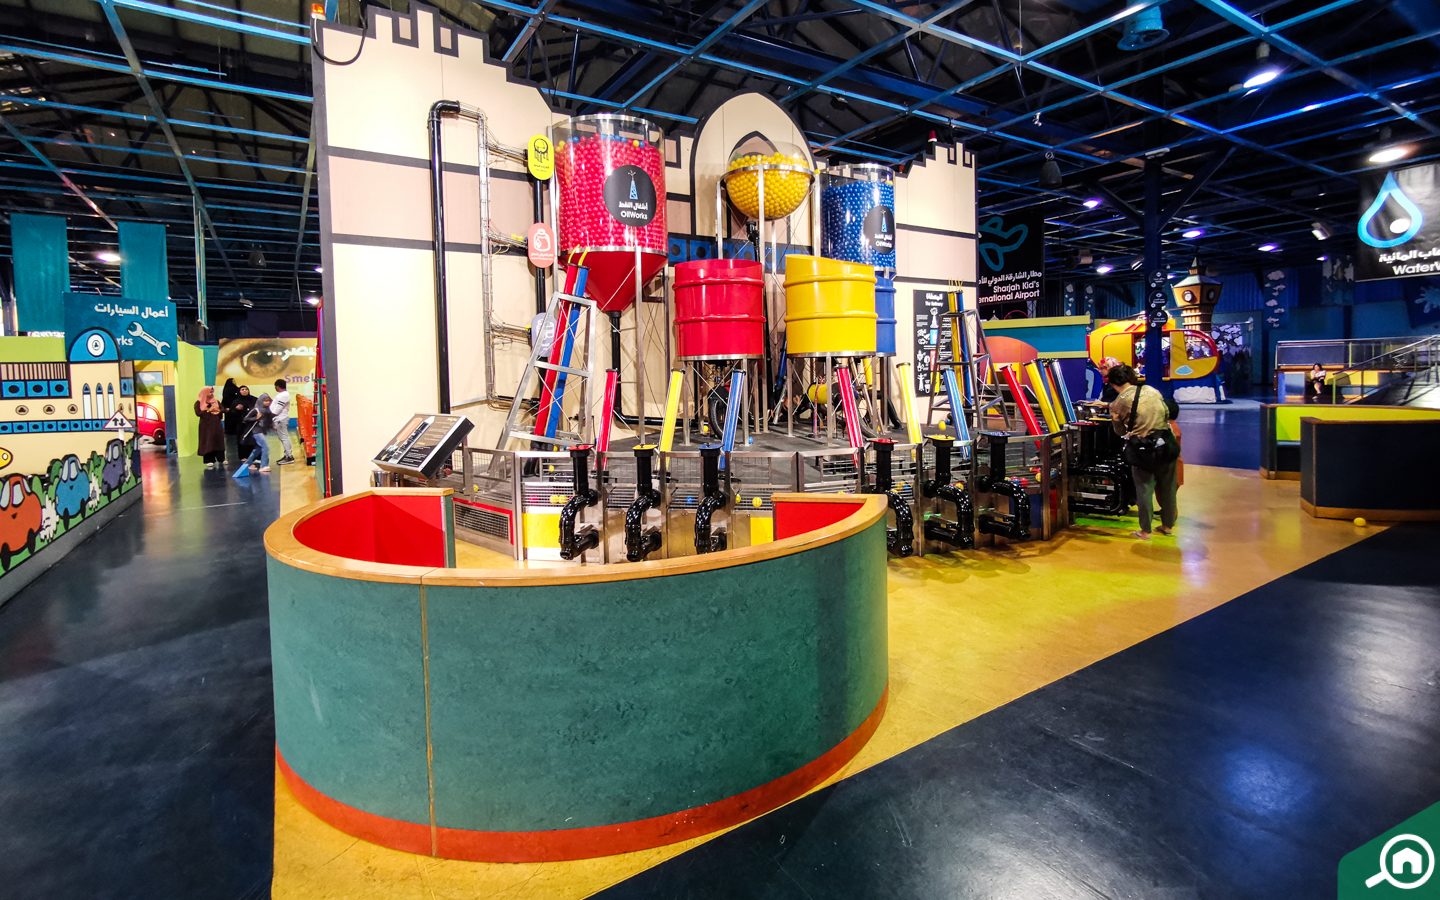 Sharjah discovery Centre